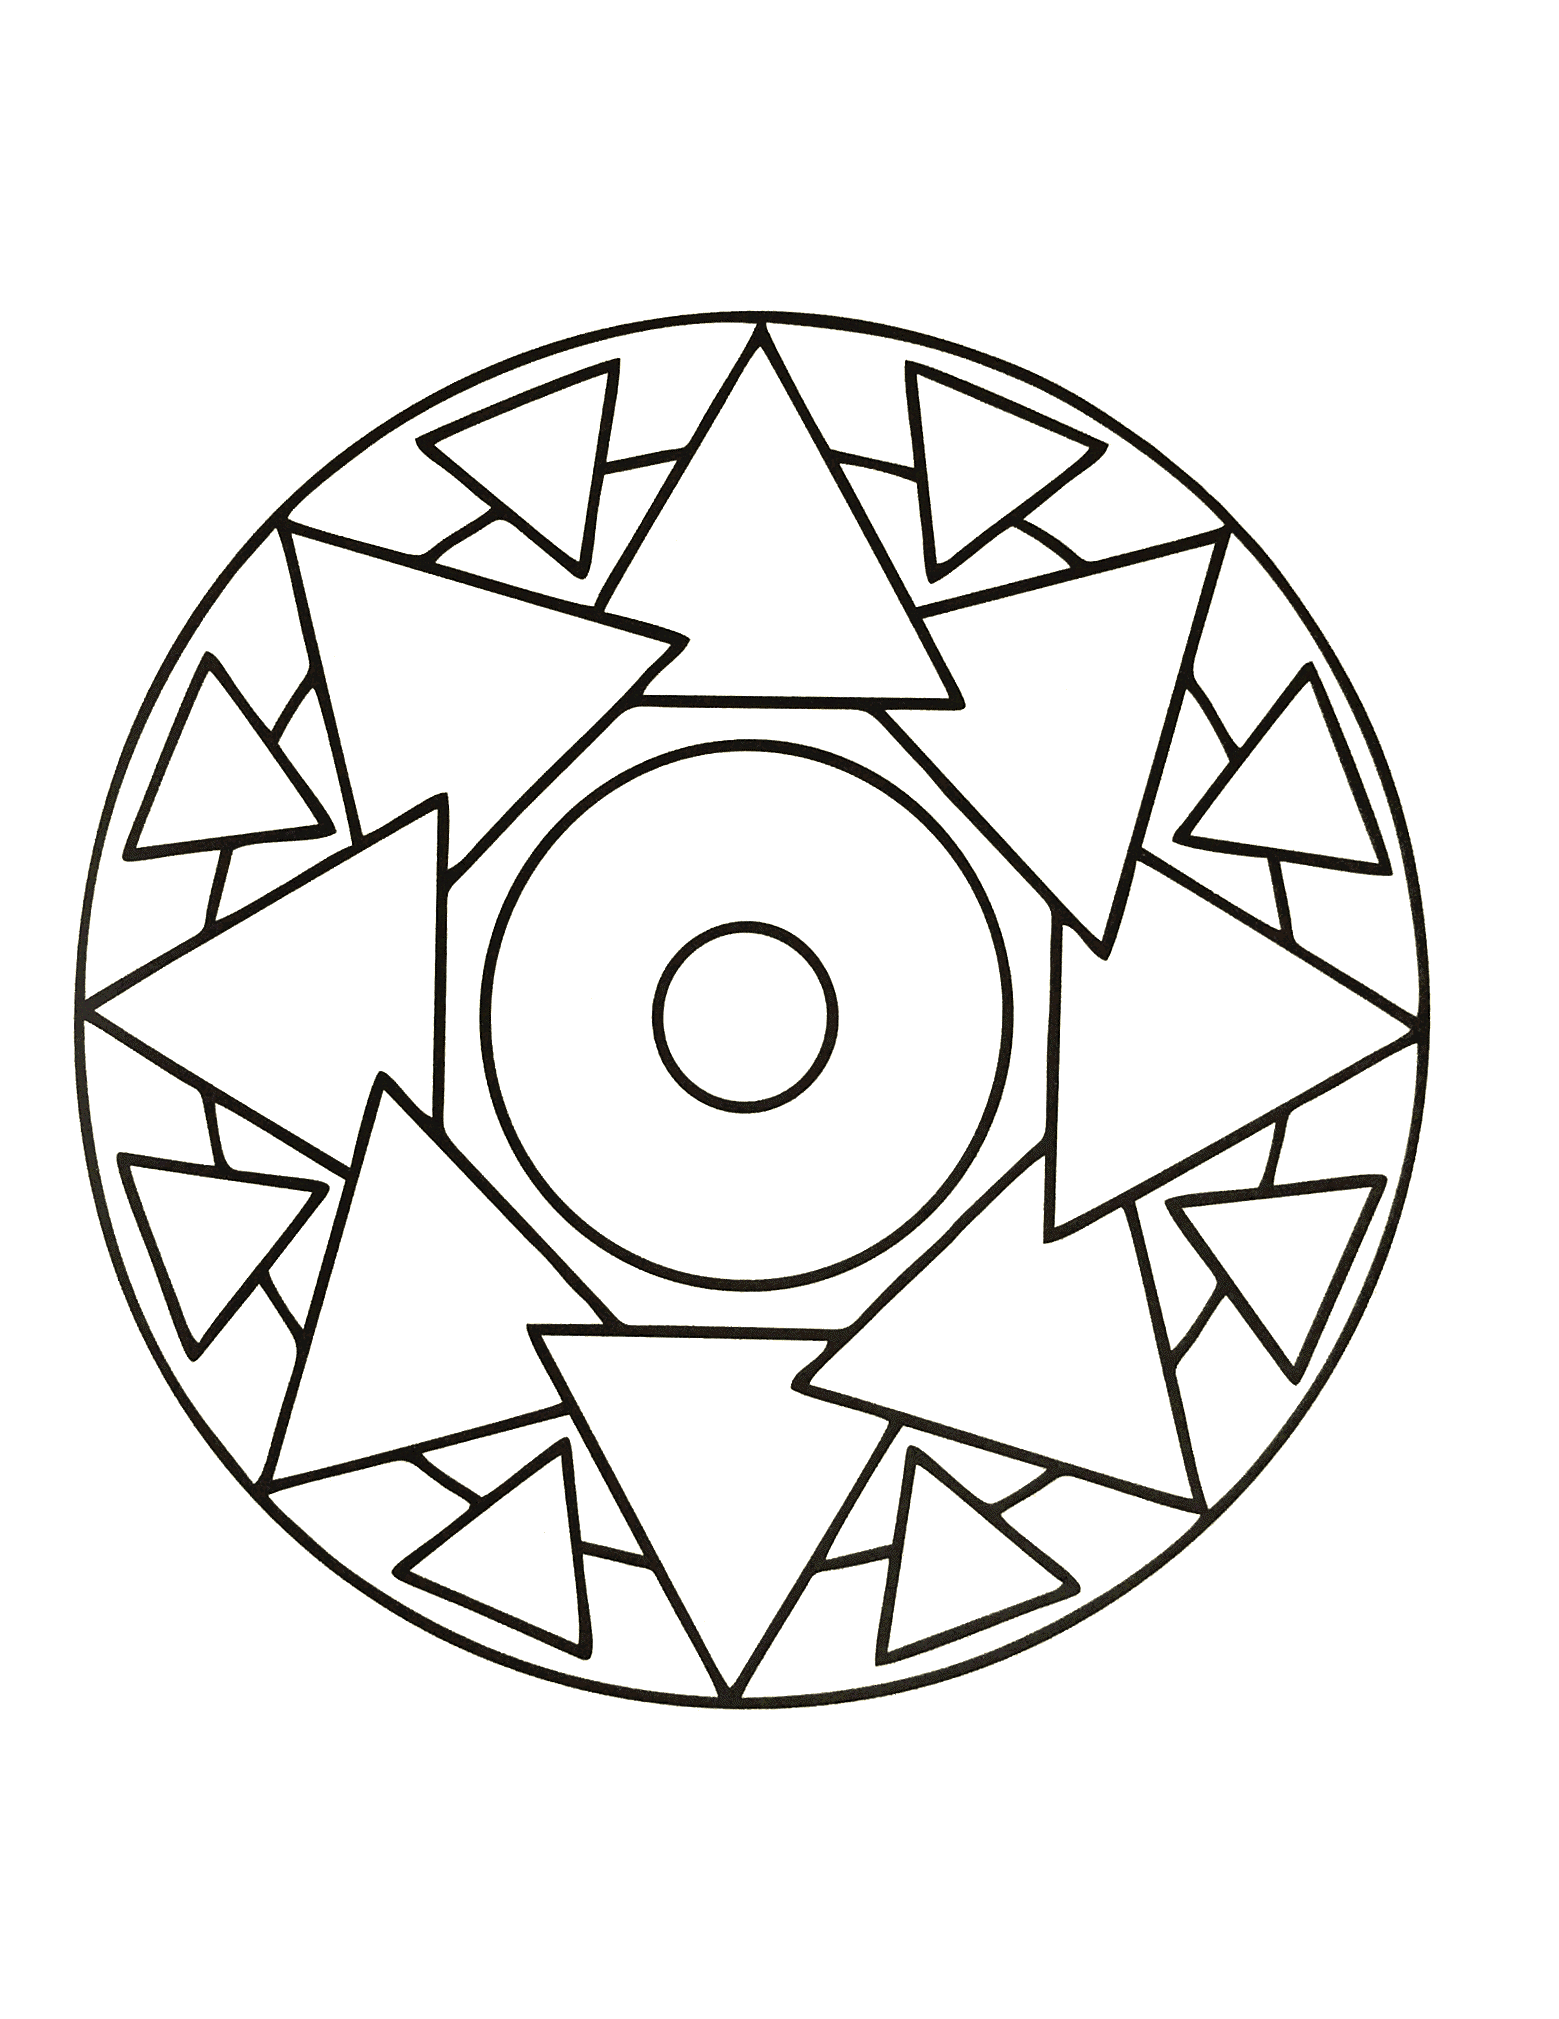 Simple mandala 65 - M&alas Coloring pages for kids to print & color